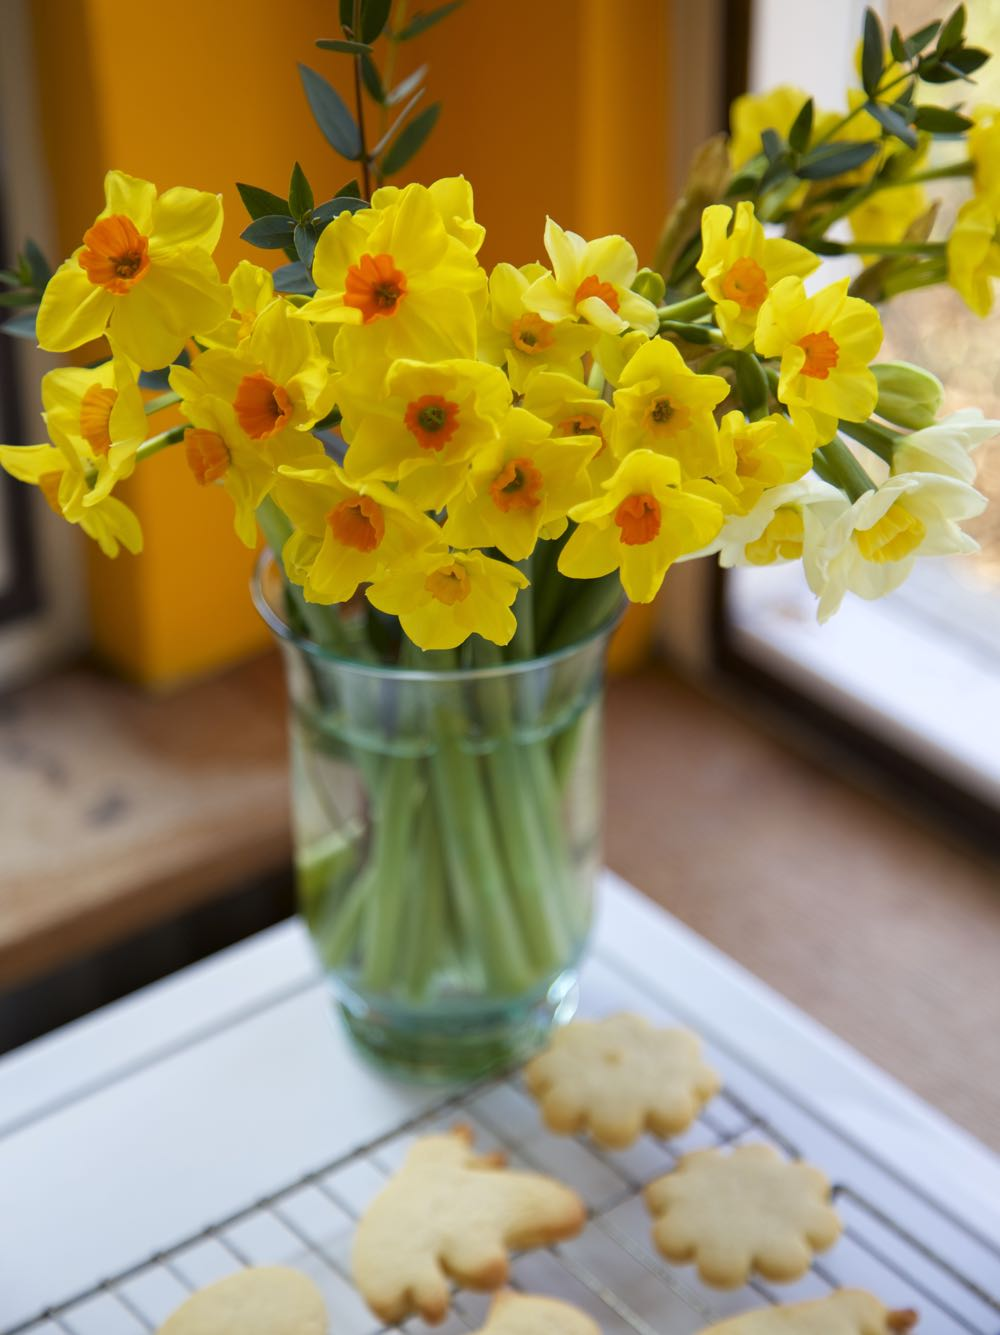 A jar of daffodils over the biscuits cooling on a wire rack.